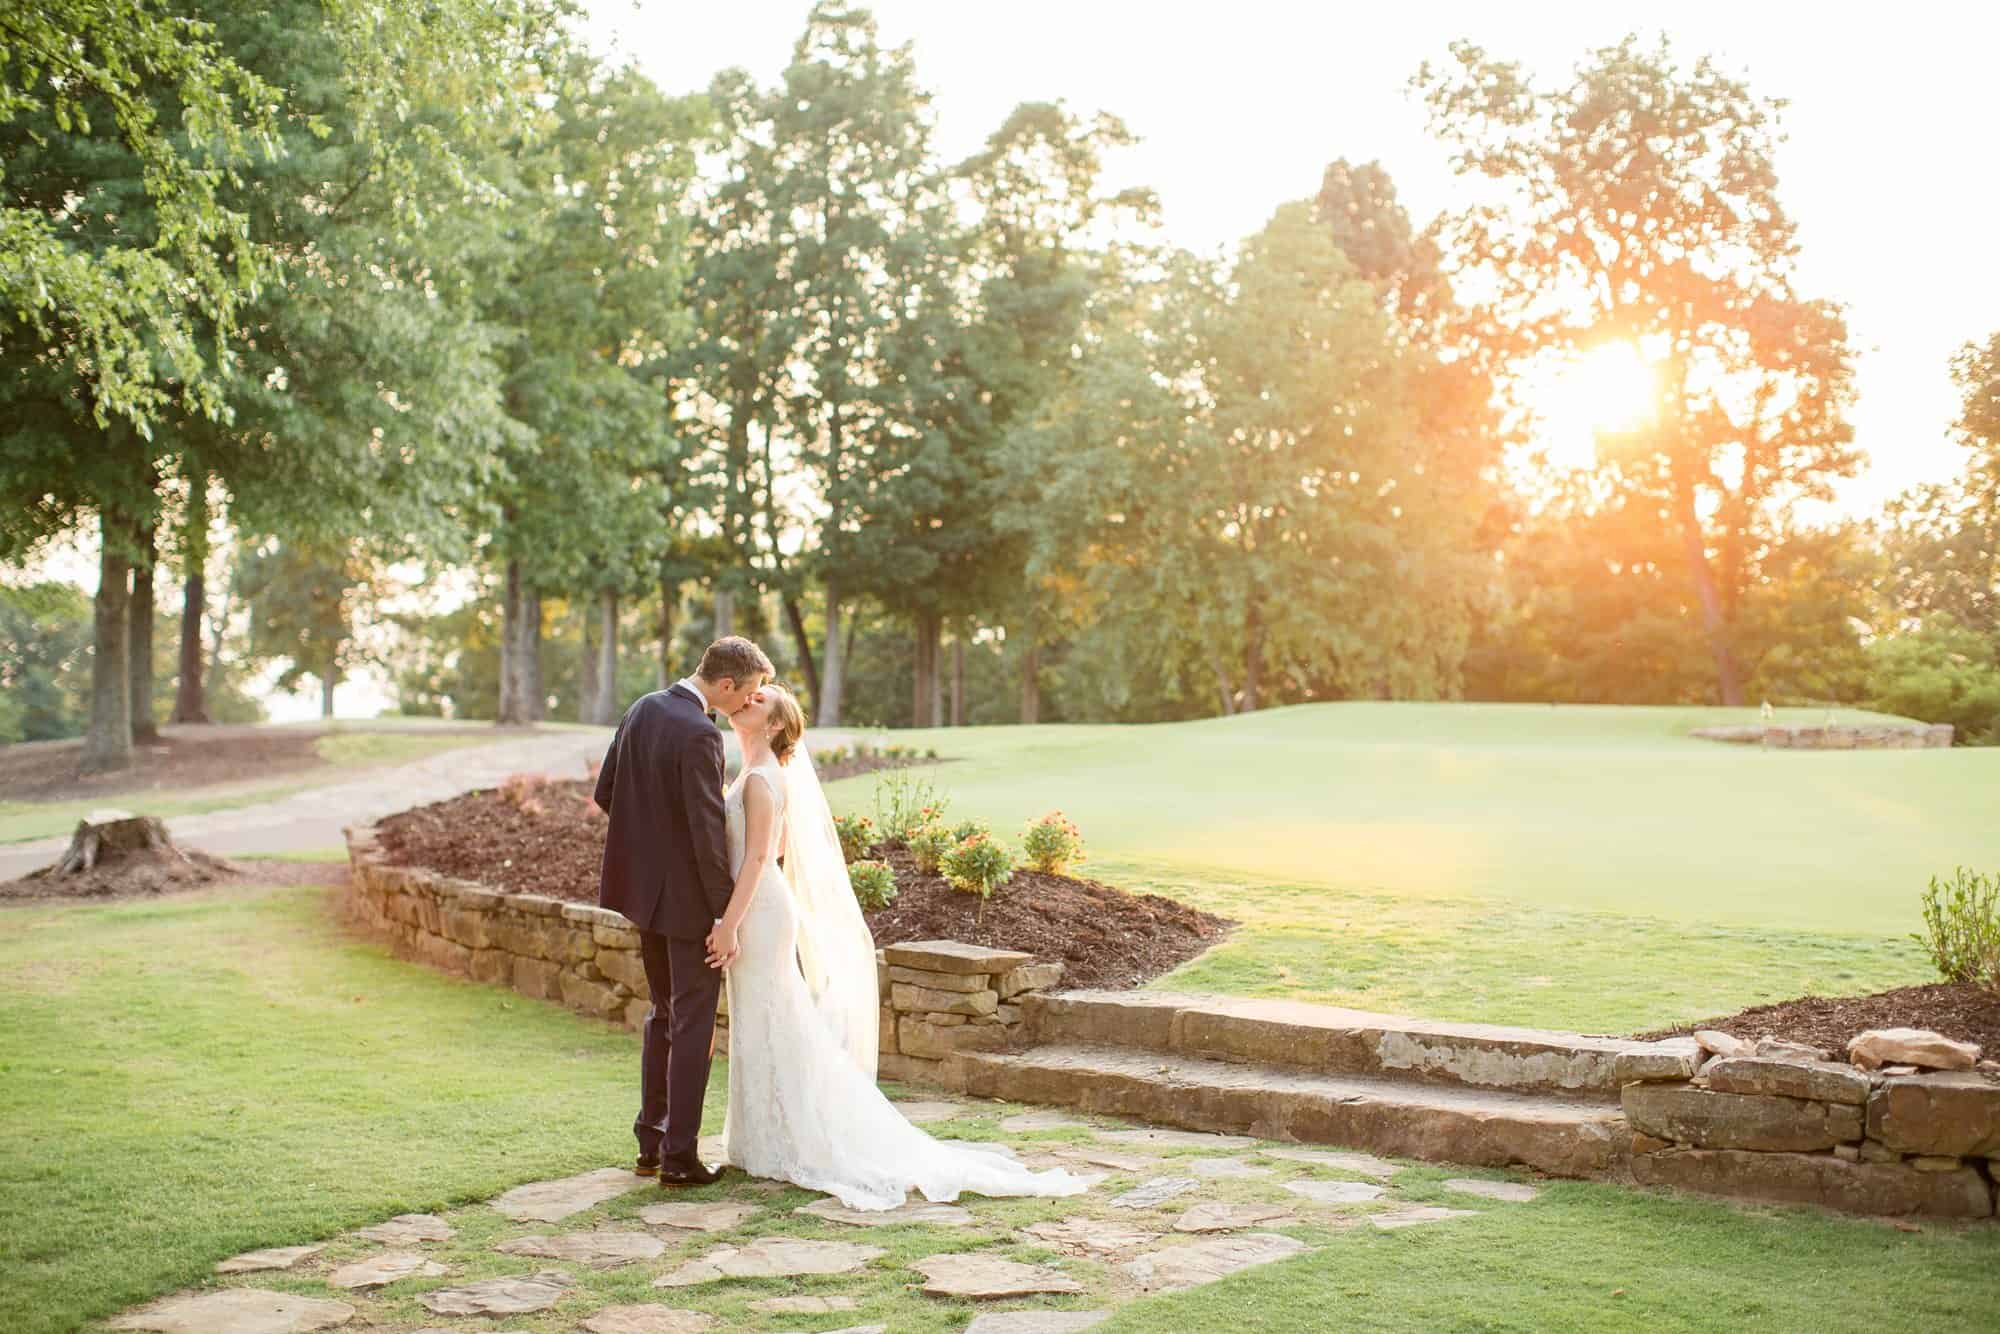 The Ledges Wedding Venues in Alabama